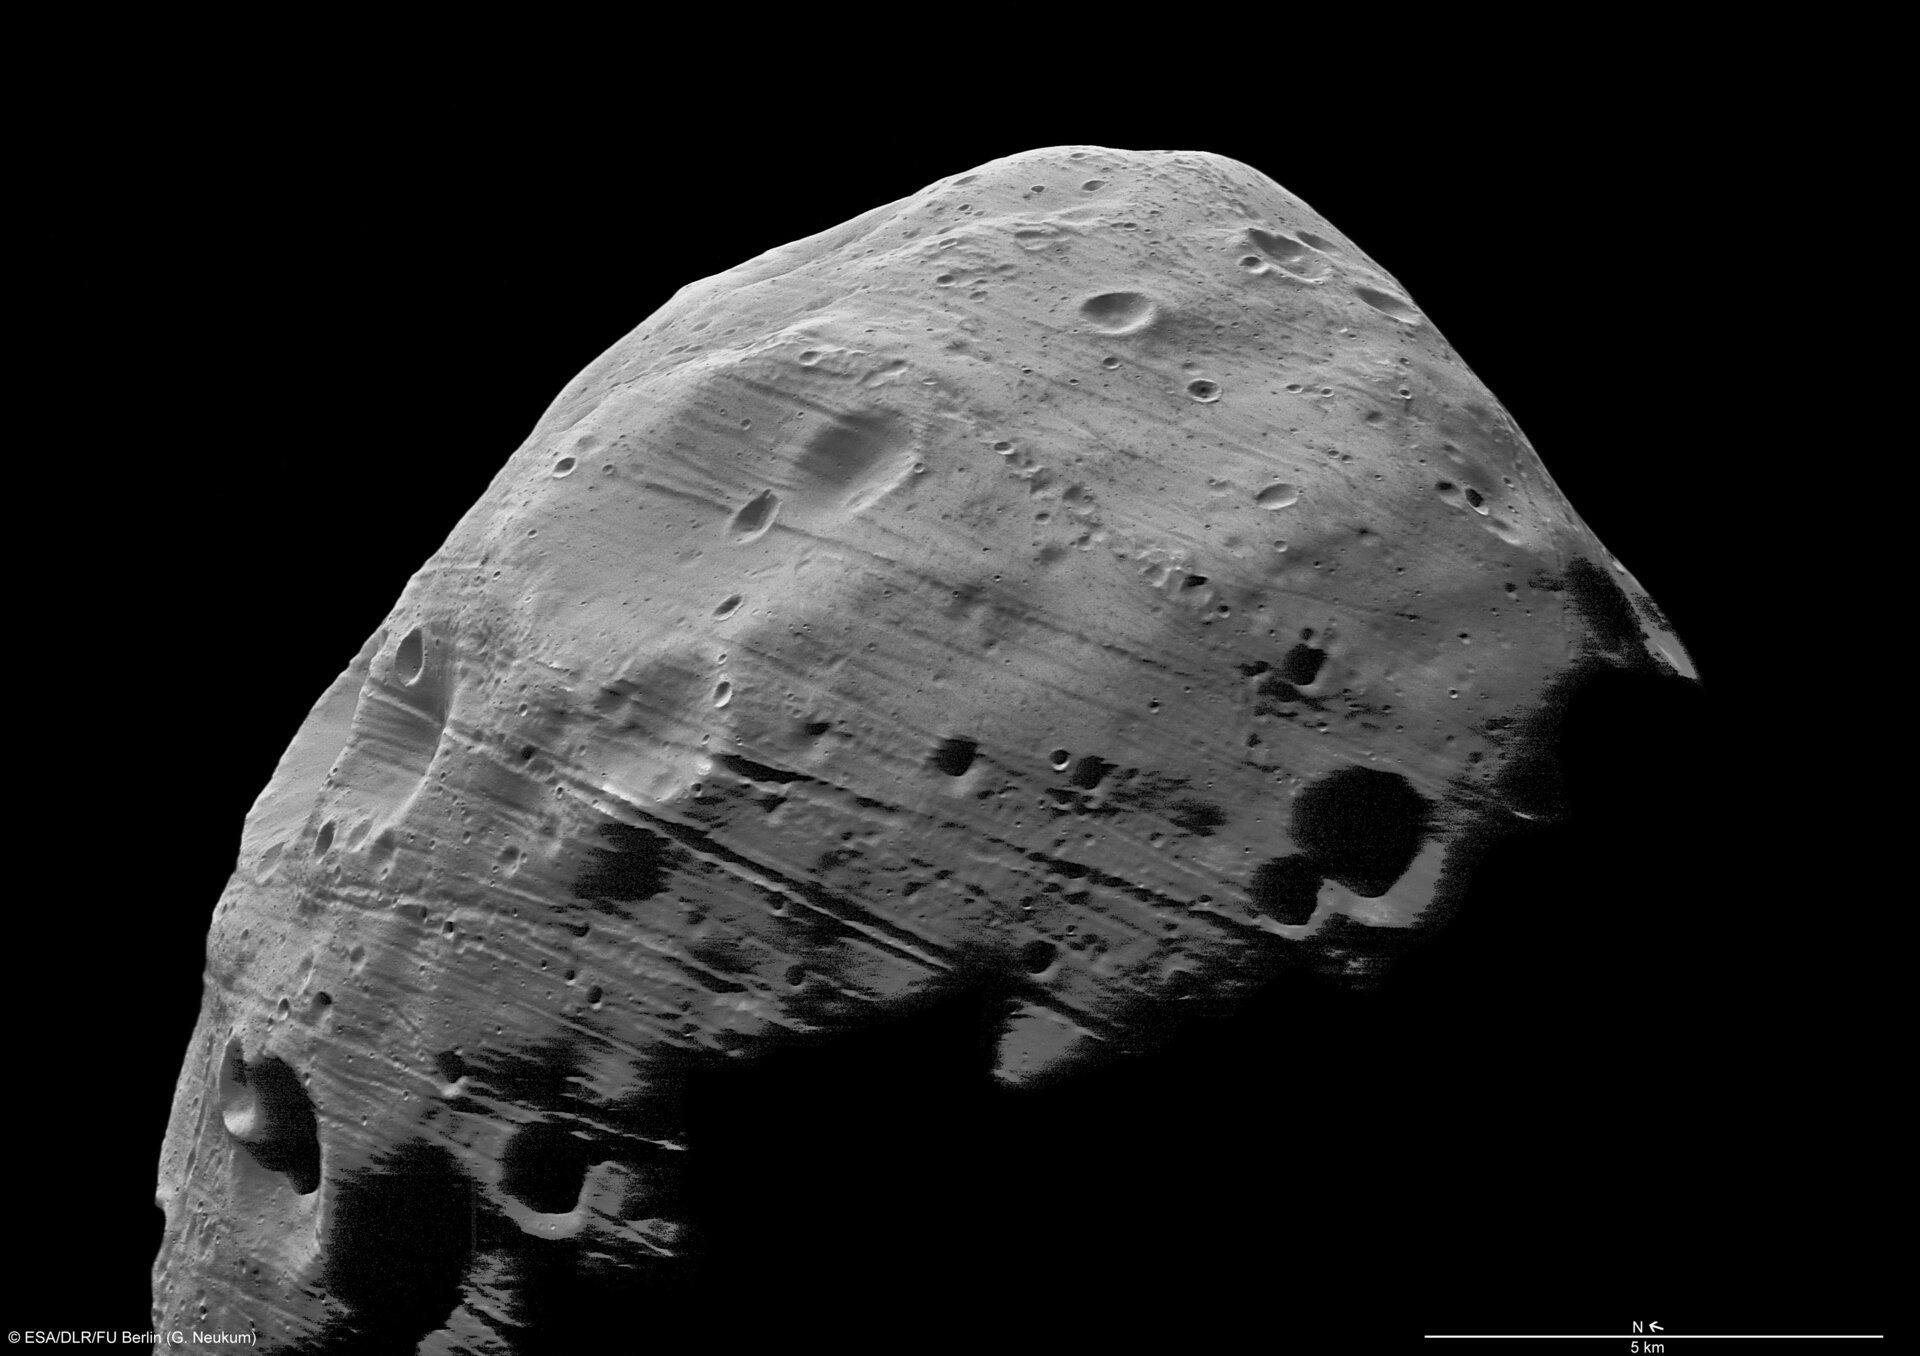 Phobos, imaged by Mars Express.